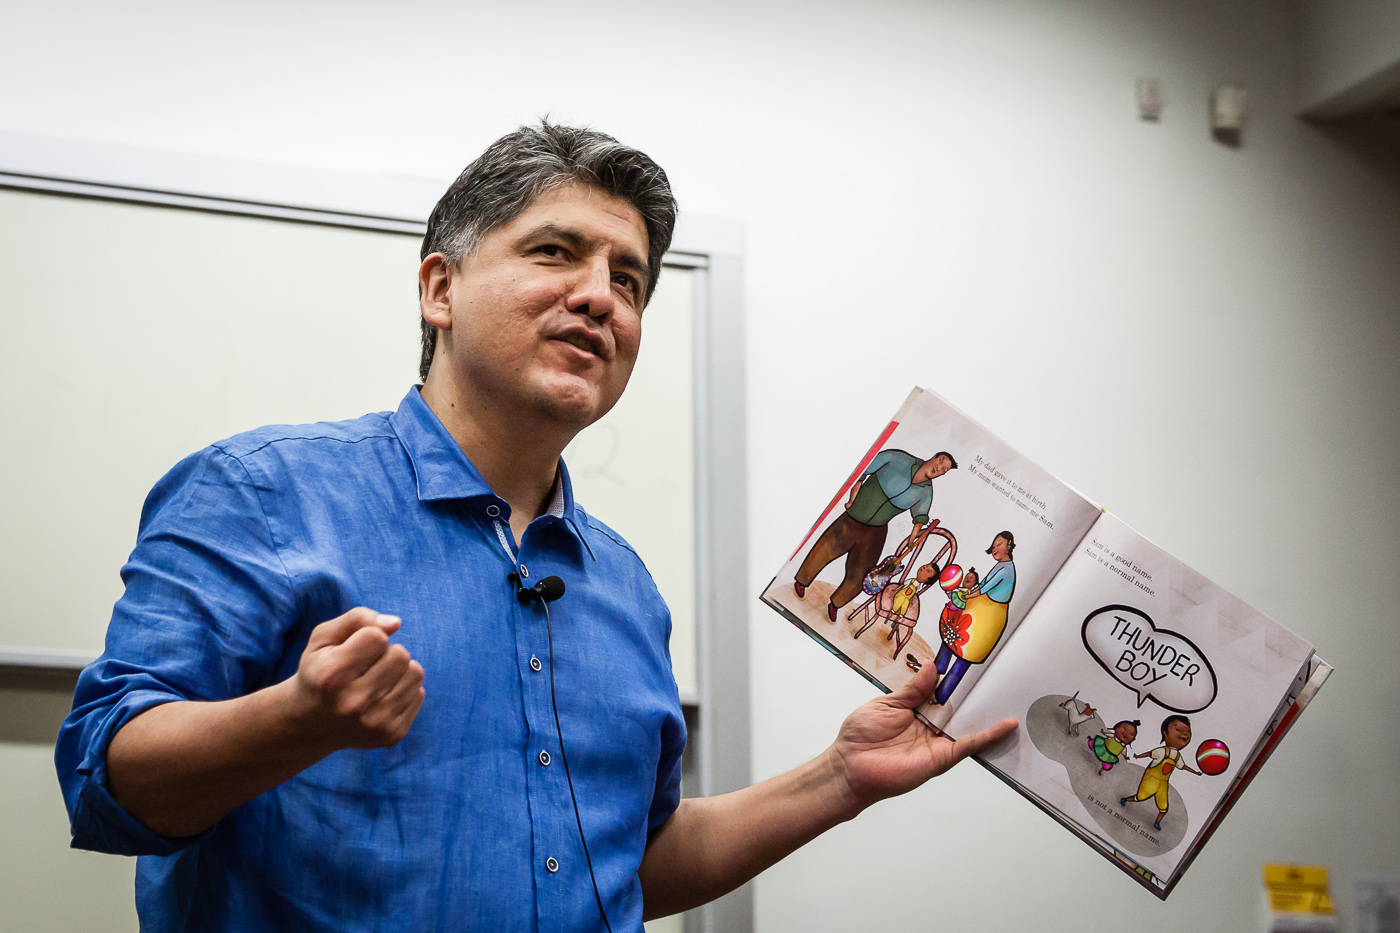 Sherman Alexie breaks silence after allegations of sexual harassment